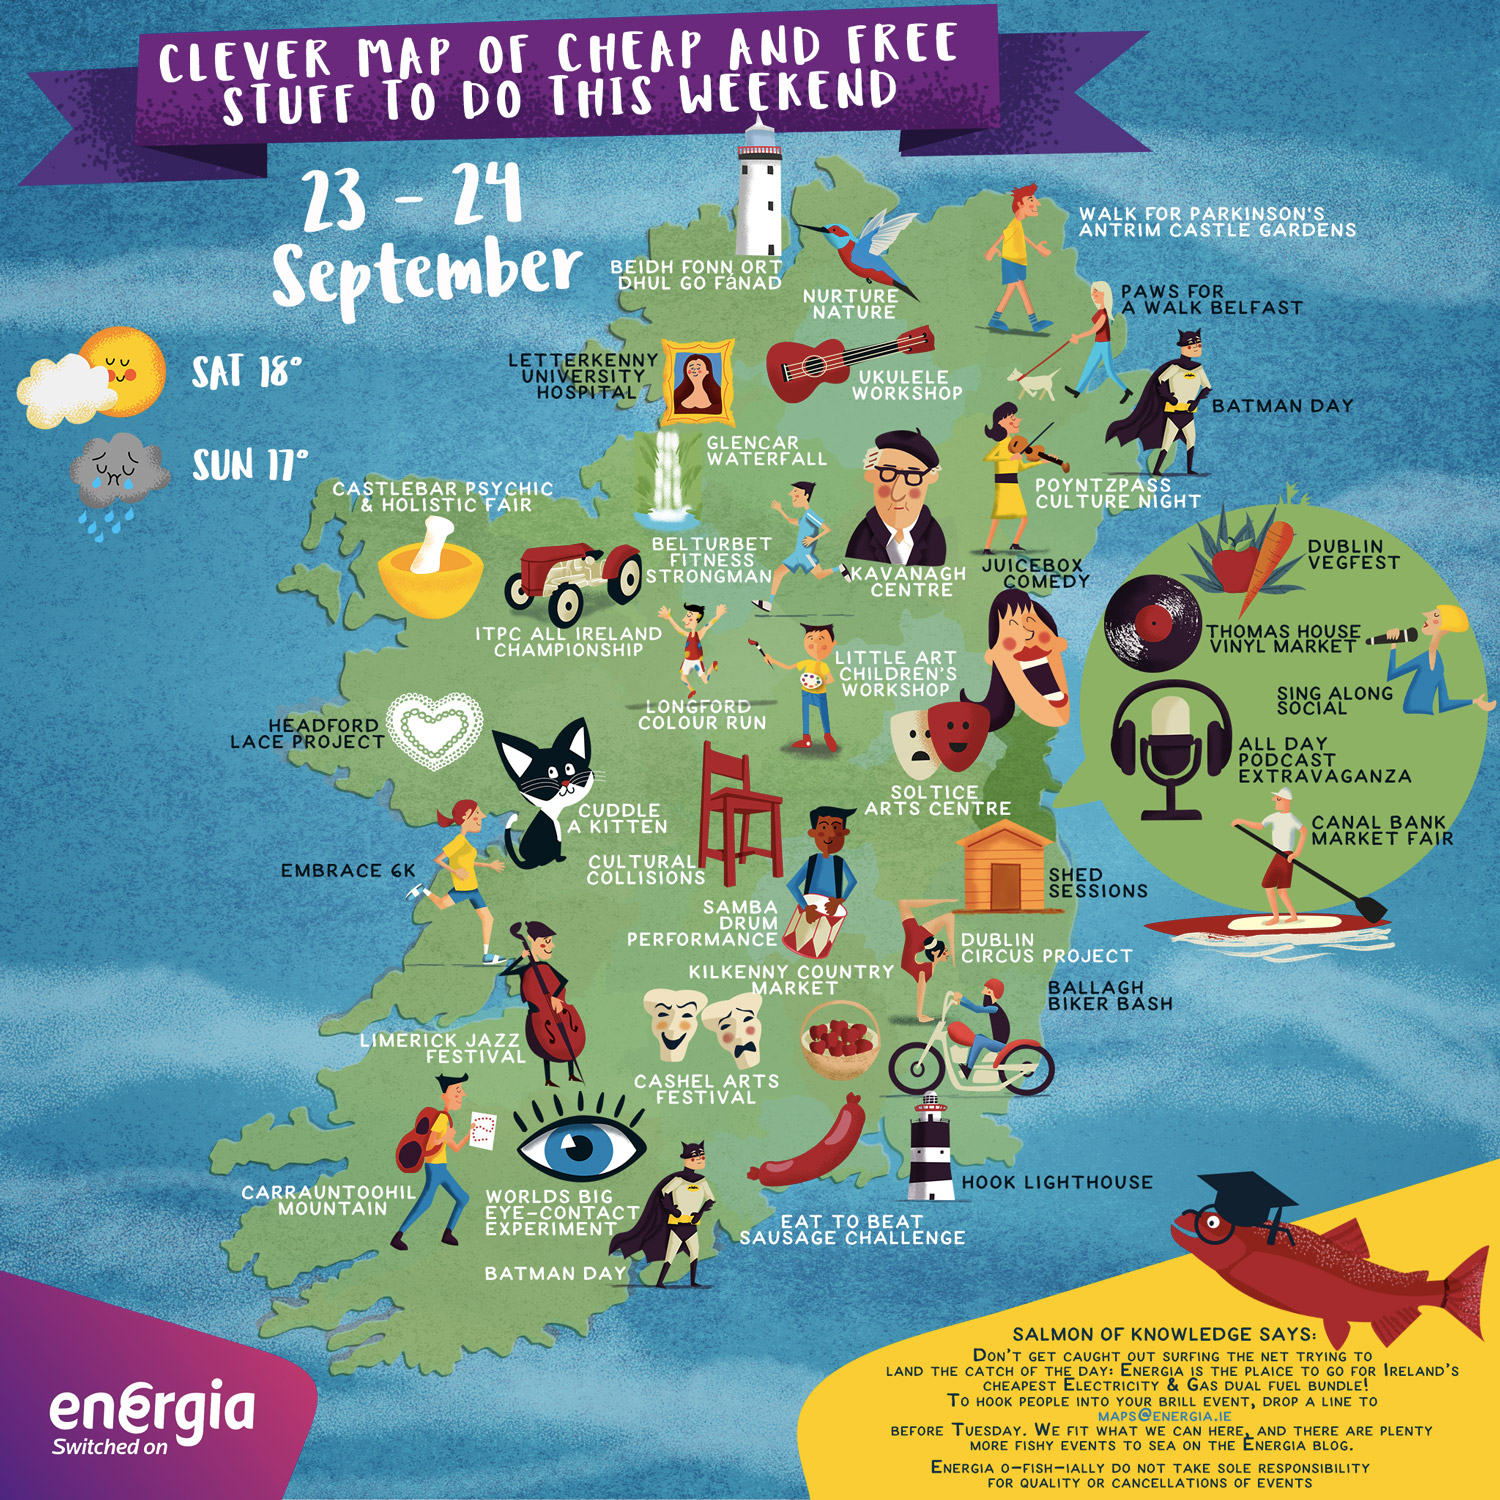 Map Of Quinn Ireland.Cheap Free Things To Do This Weekend 23rd 24th September Energia